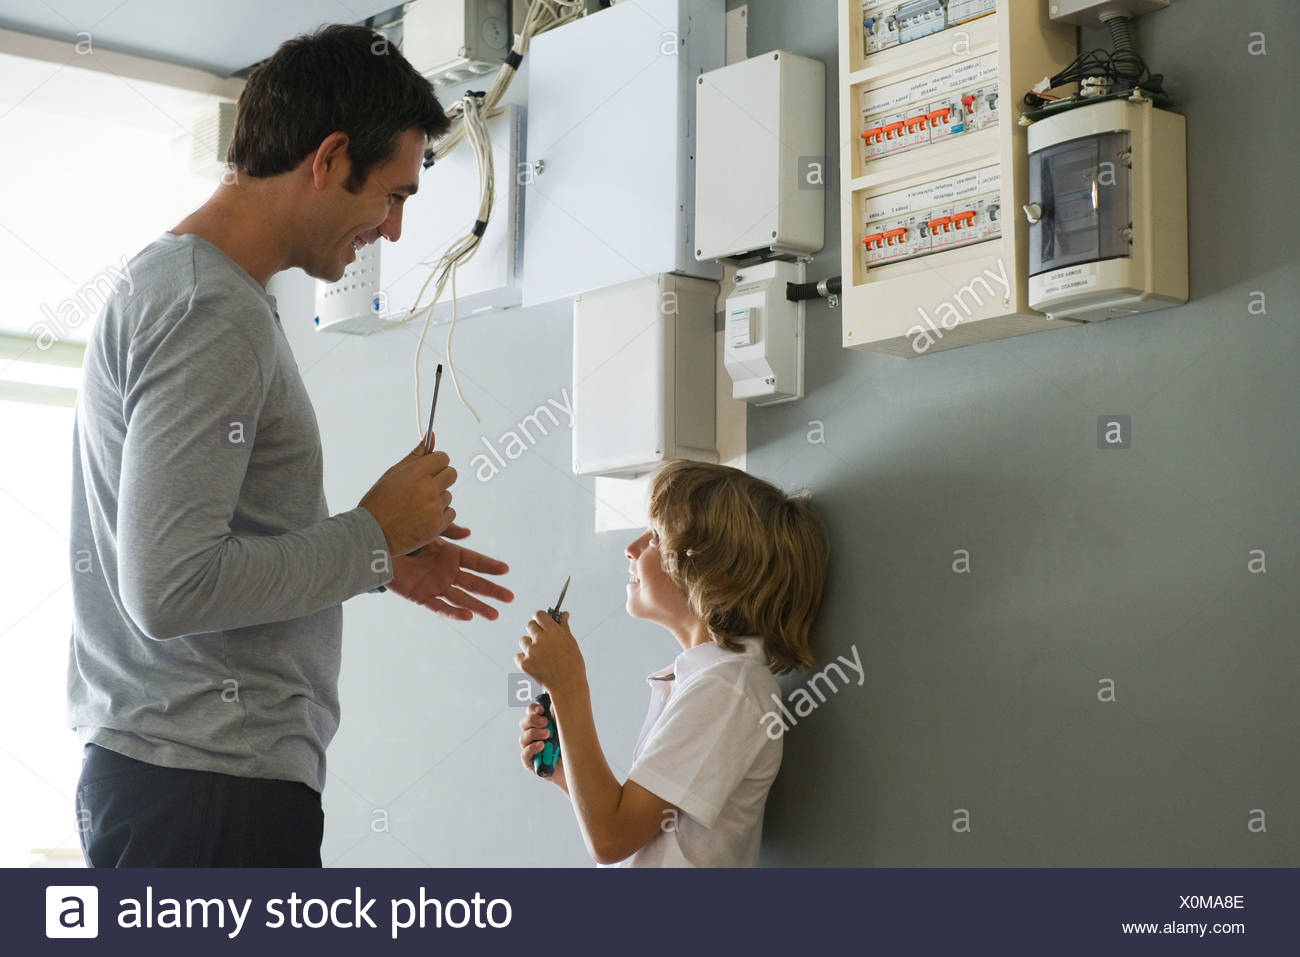 Home Fuse Box Stock Photos Images Alamy Son Helping Father With Improvement Image